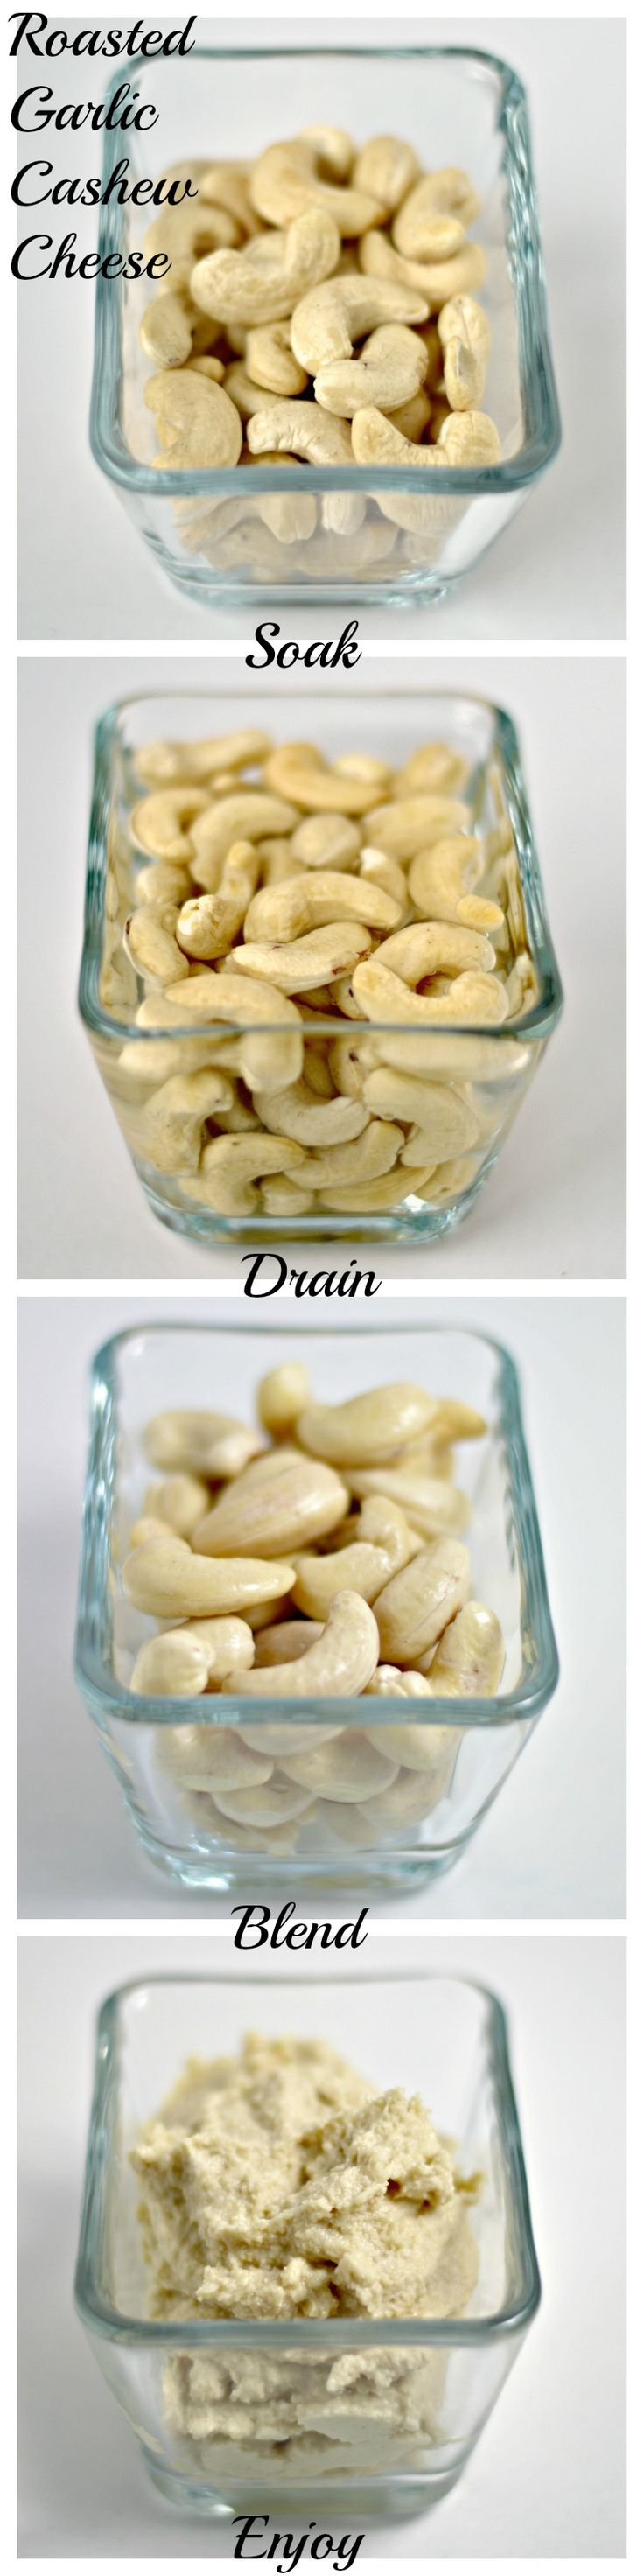 Snack Recipe: Cashew Cheese. This recipe is suitable for our paleo and vegan friends.